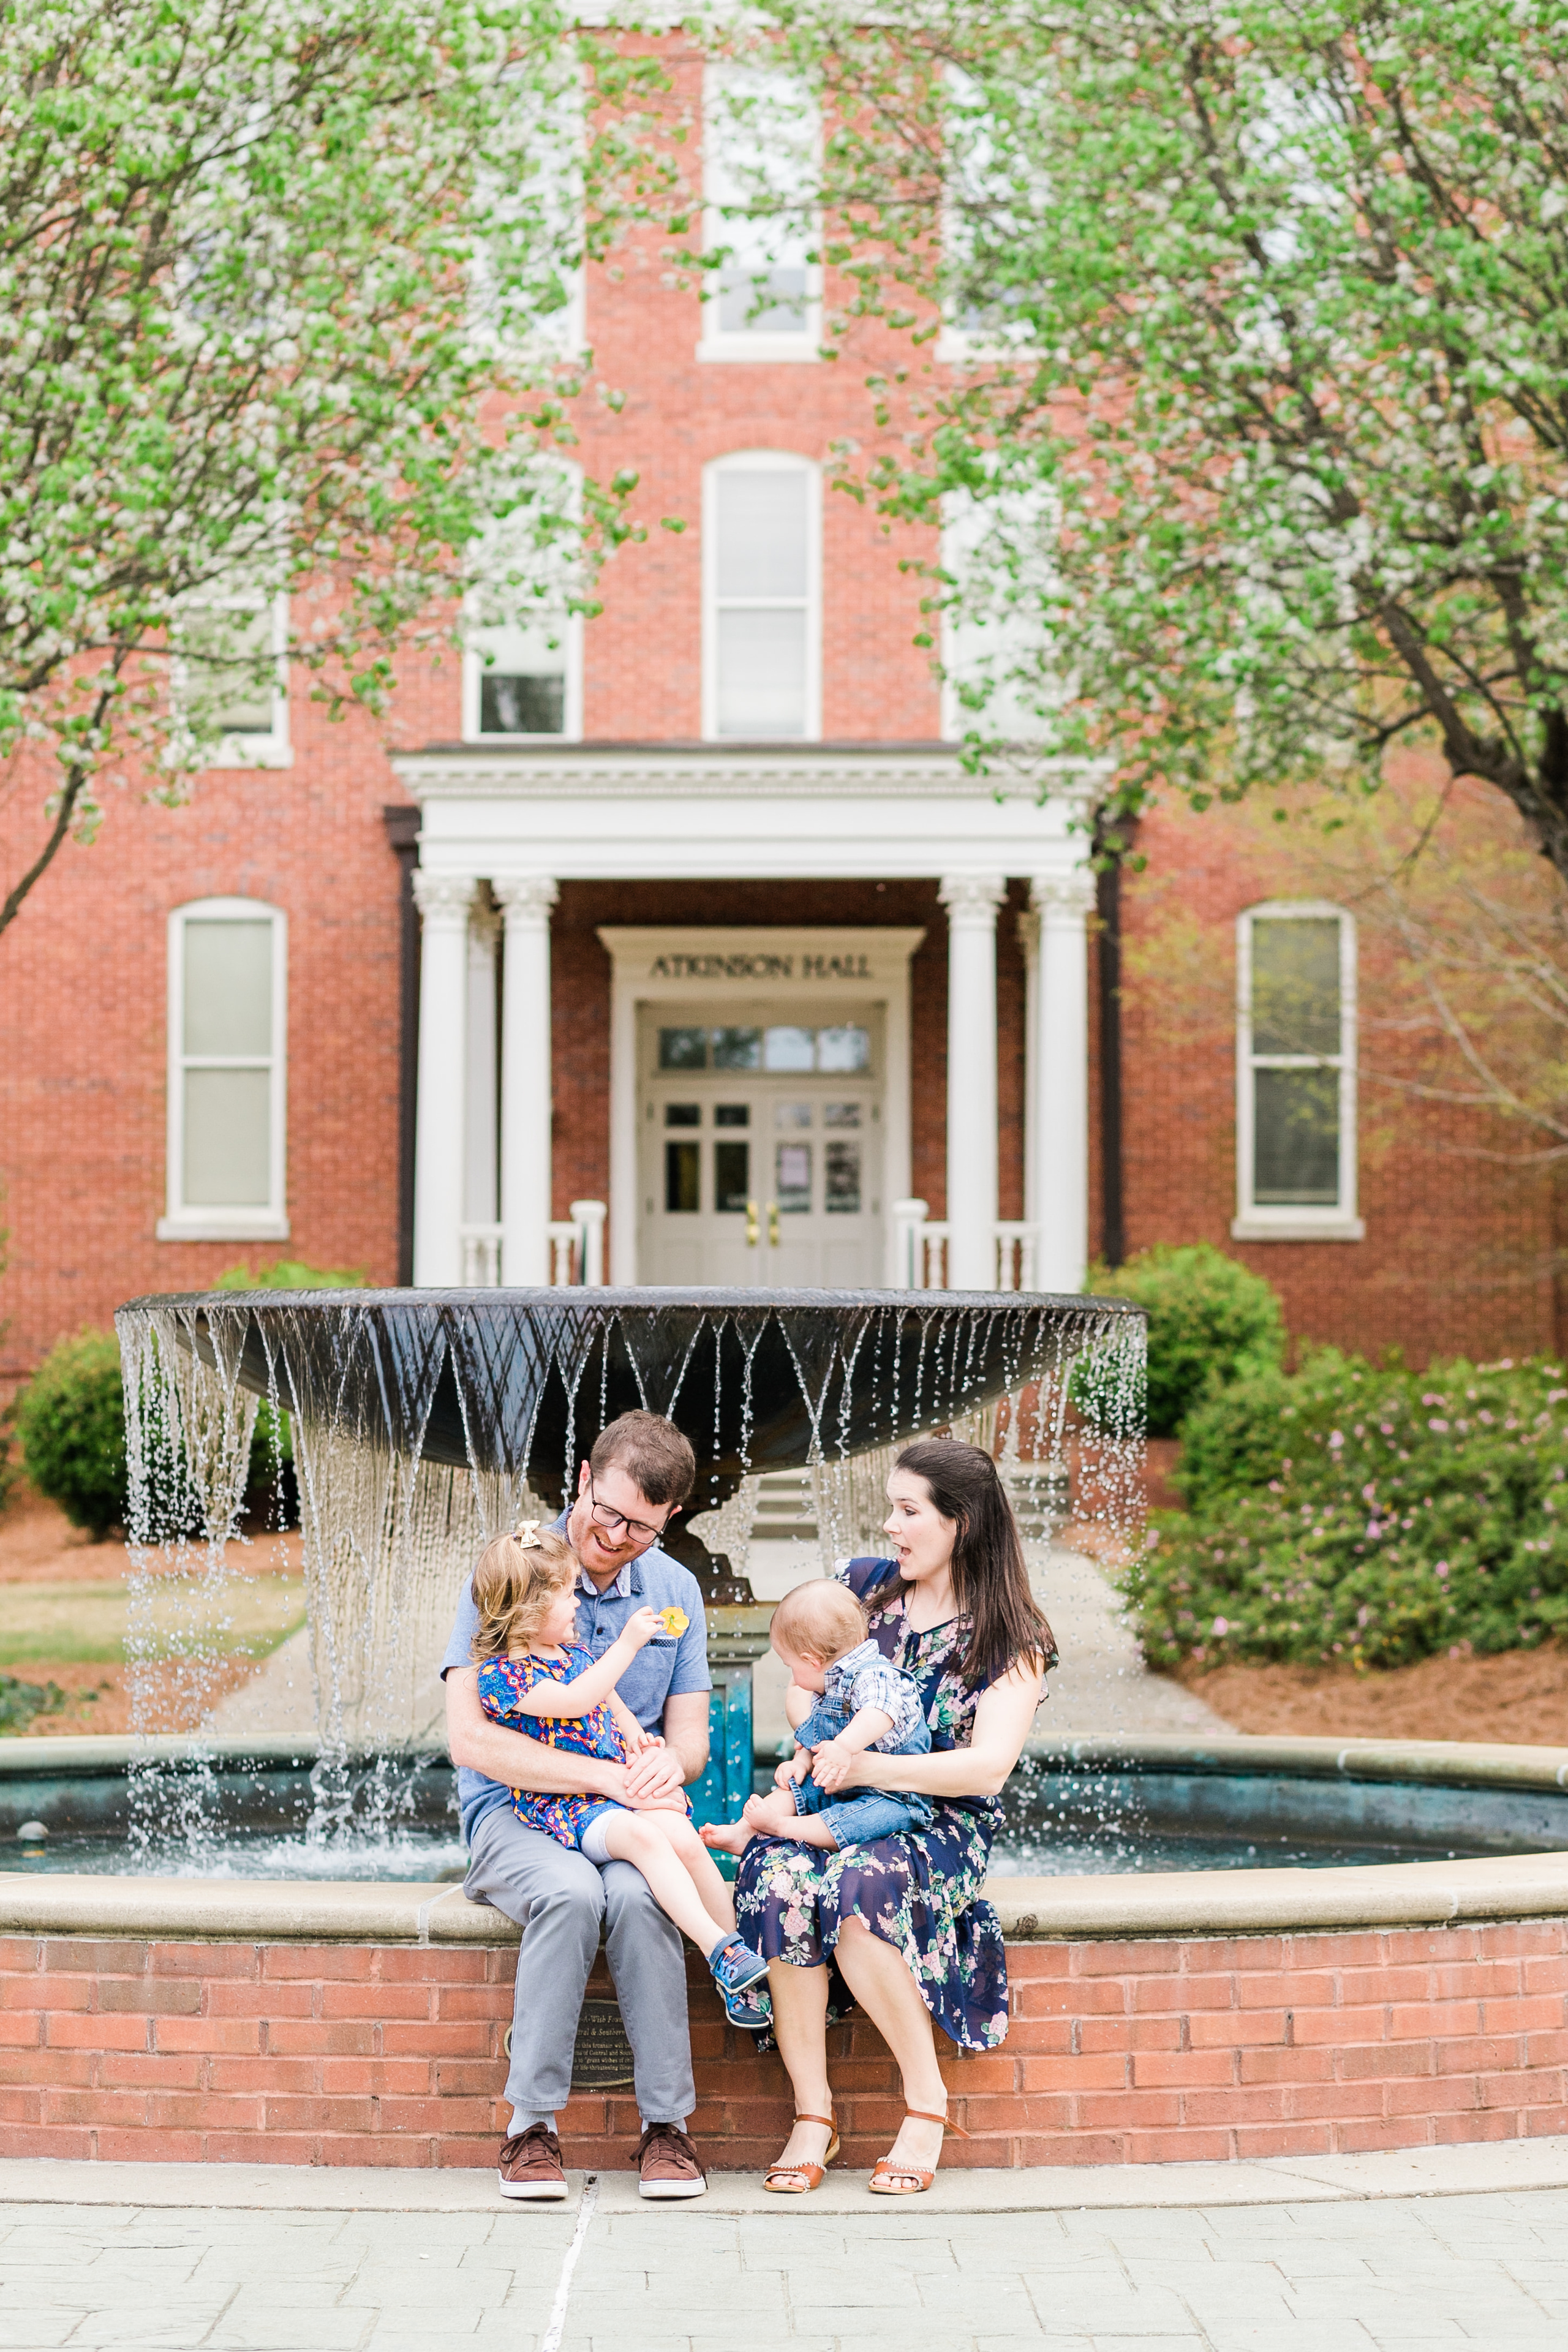 Brent and his wife is Kendra are both alumni who work in the College of Business. Their children are Simon and Lucy. Photo by Rachel Linder.